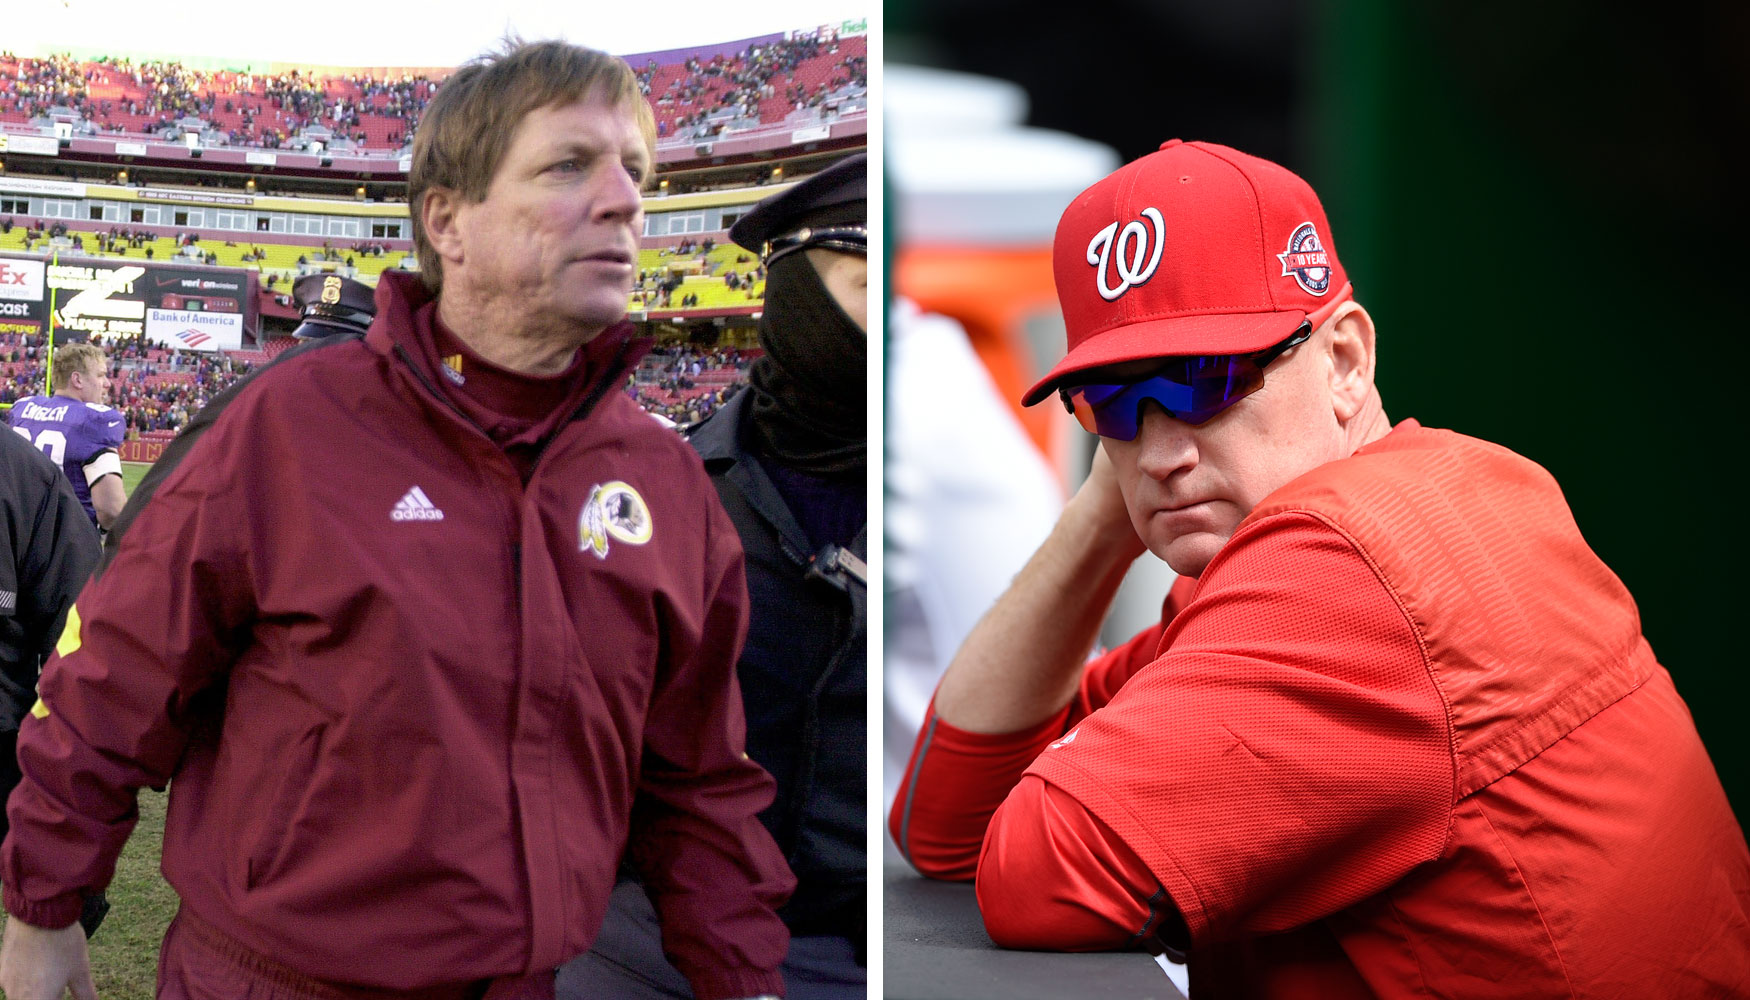 More disappointing: 2000 Redskins or 2015 Nationals?